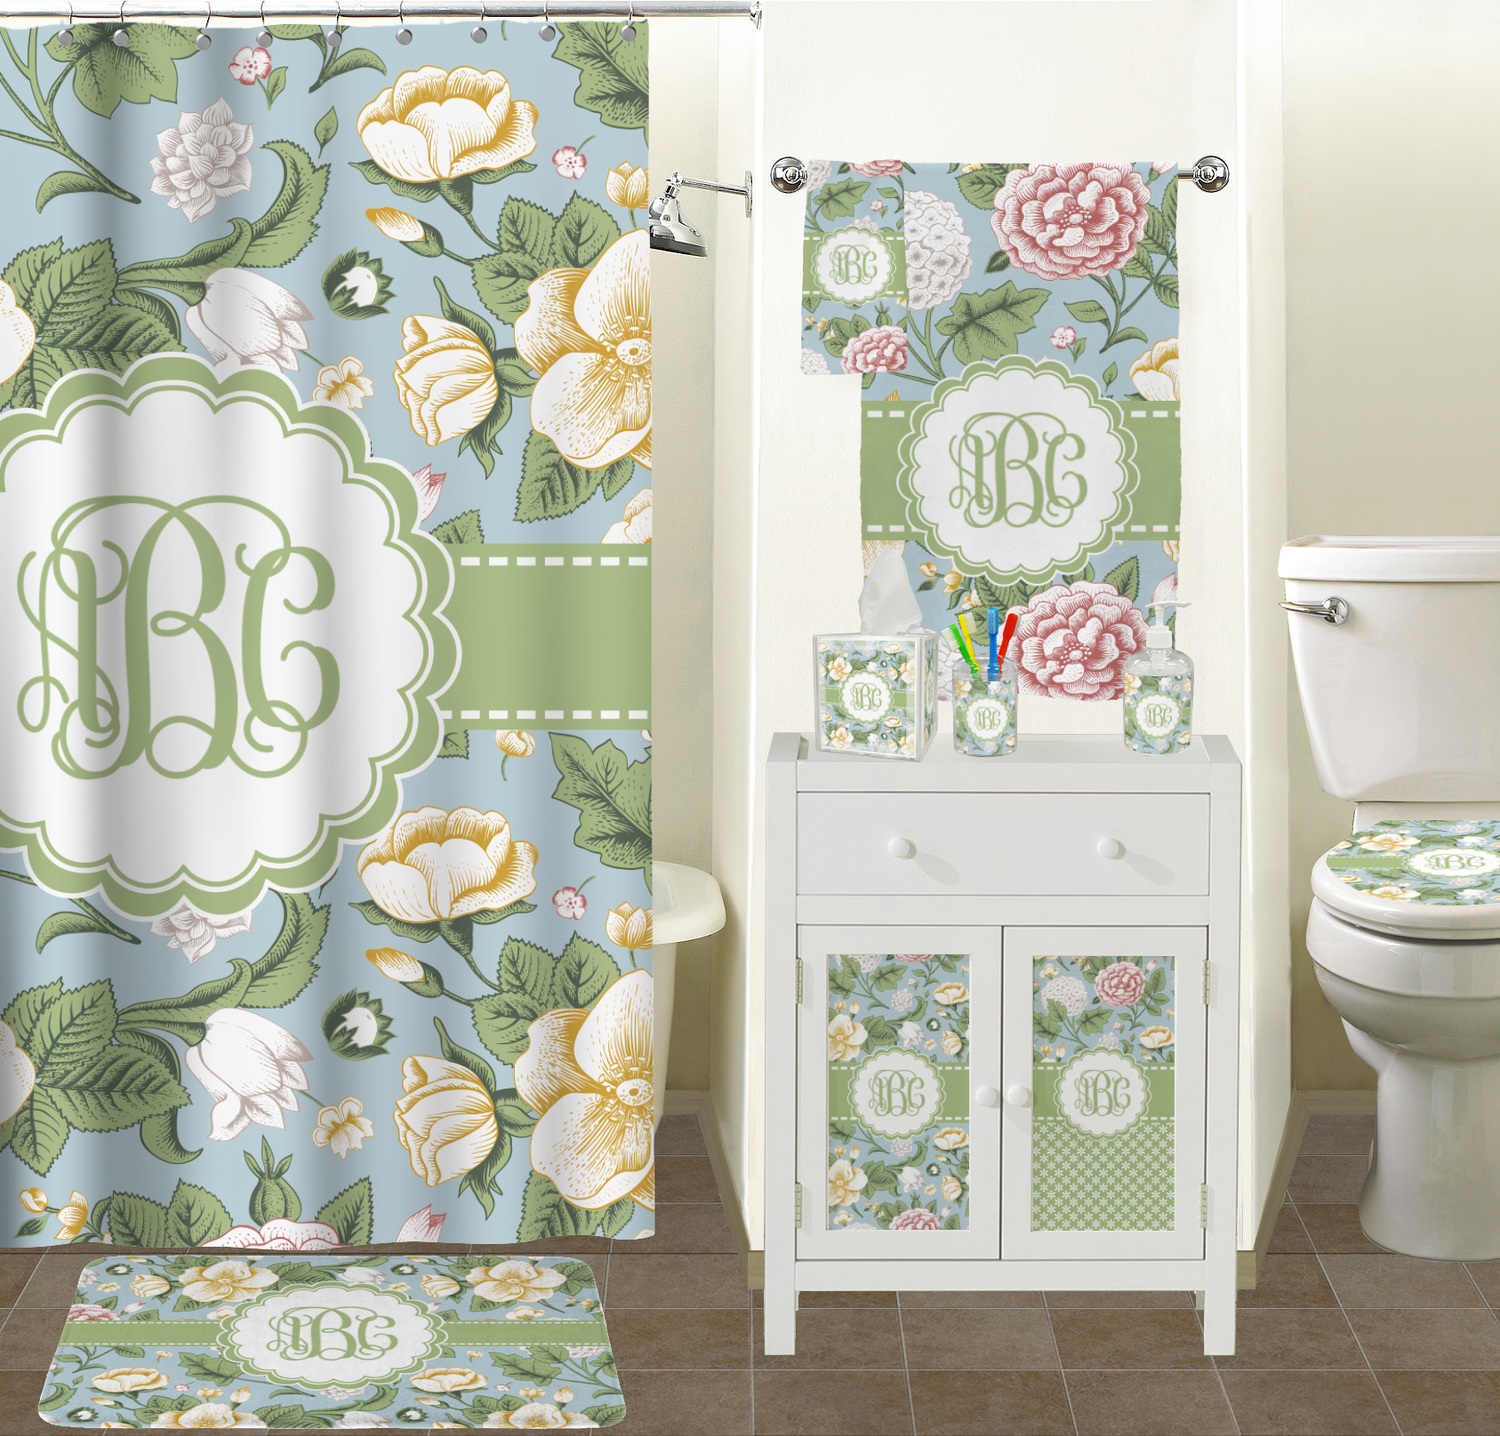 Boho Shower Curtain | Shower Curtains Floral | Floral Shower Curtain